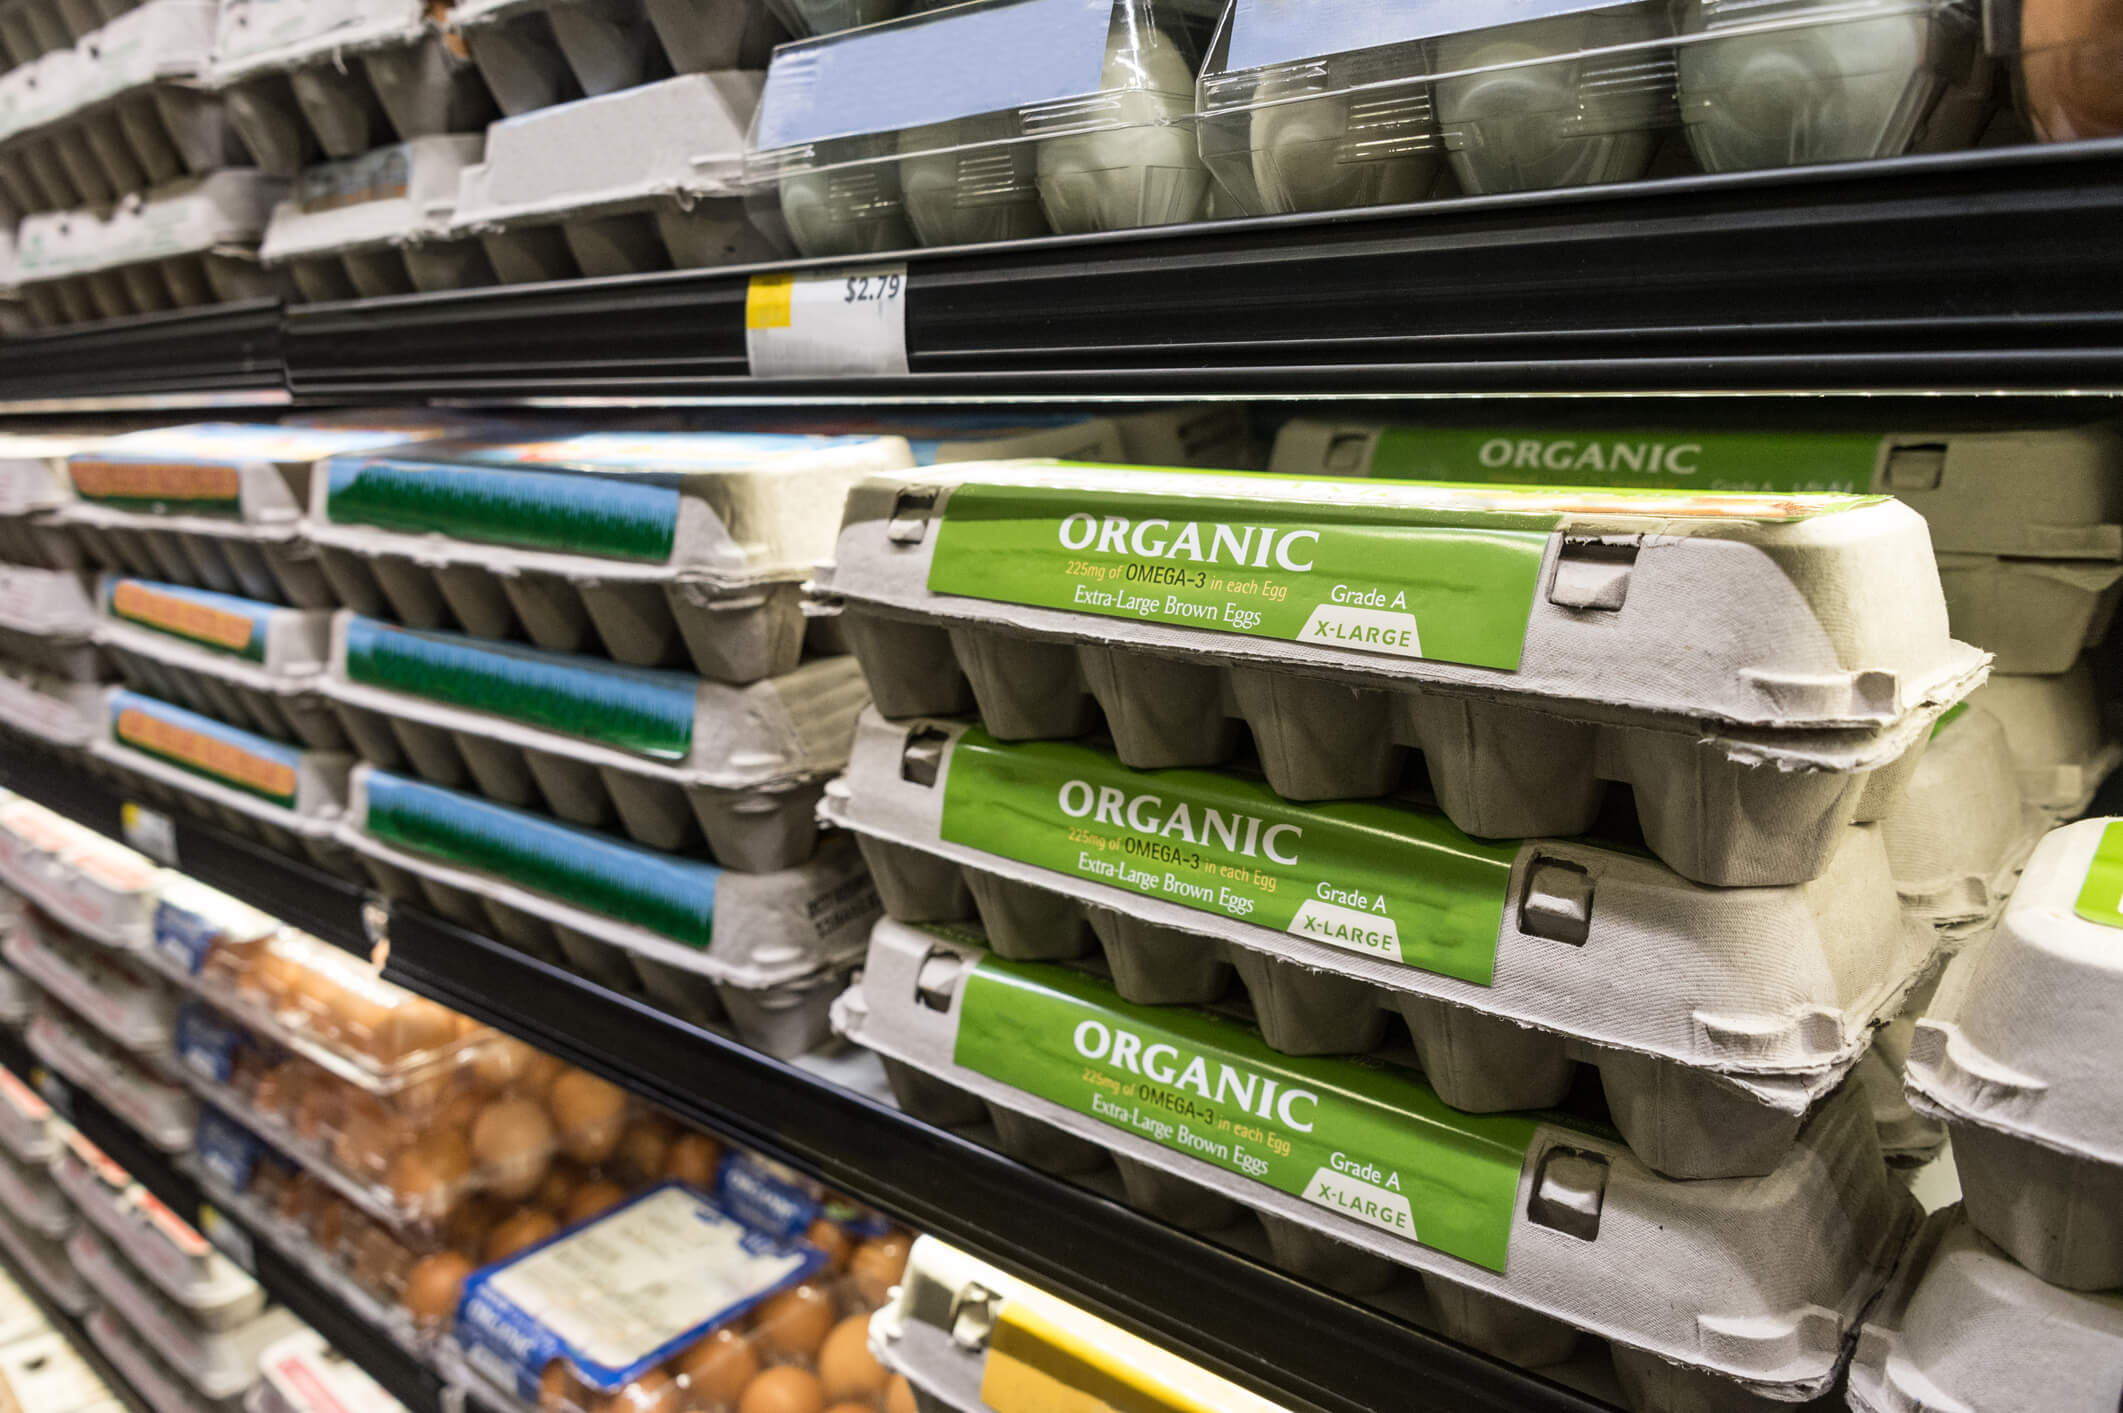 organic egg cartons on a shelf